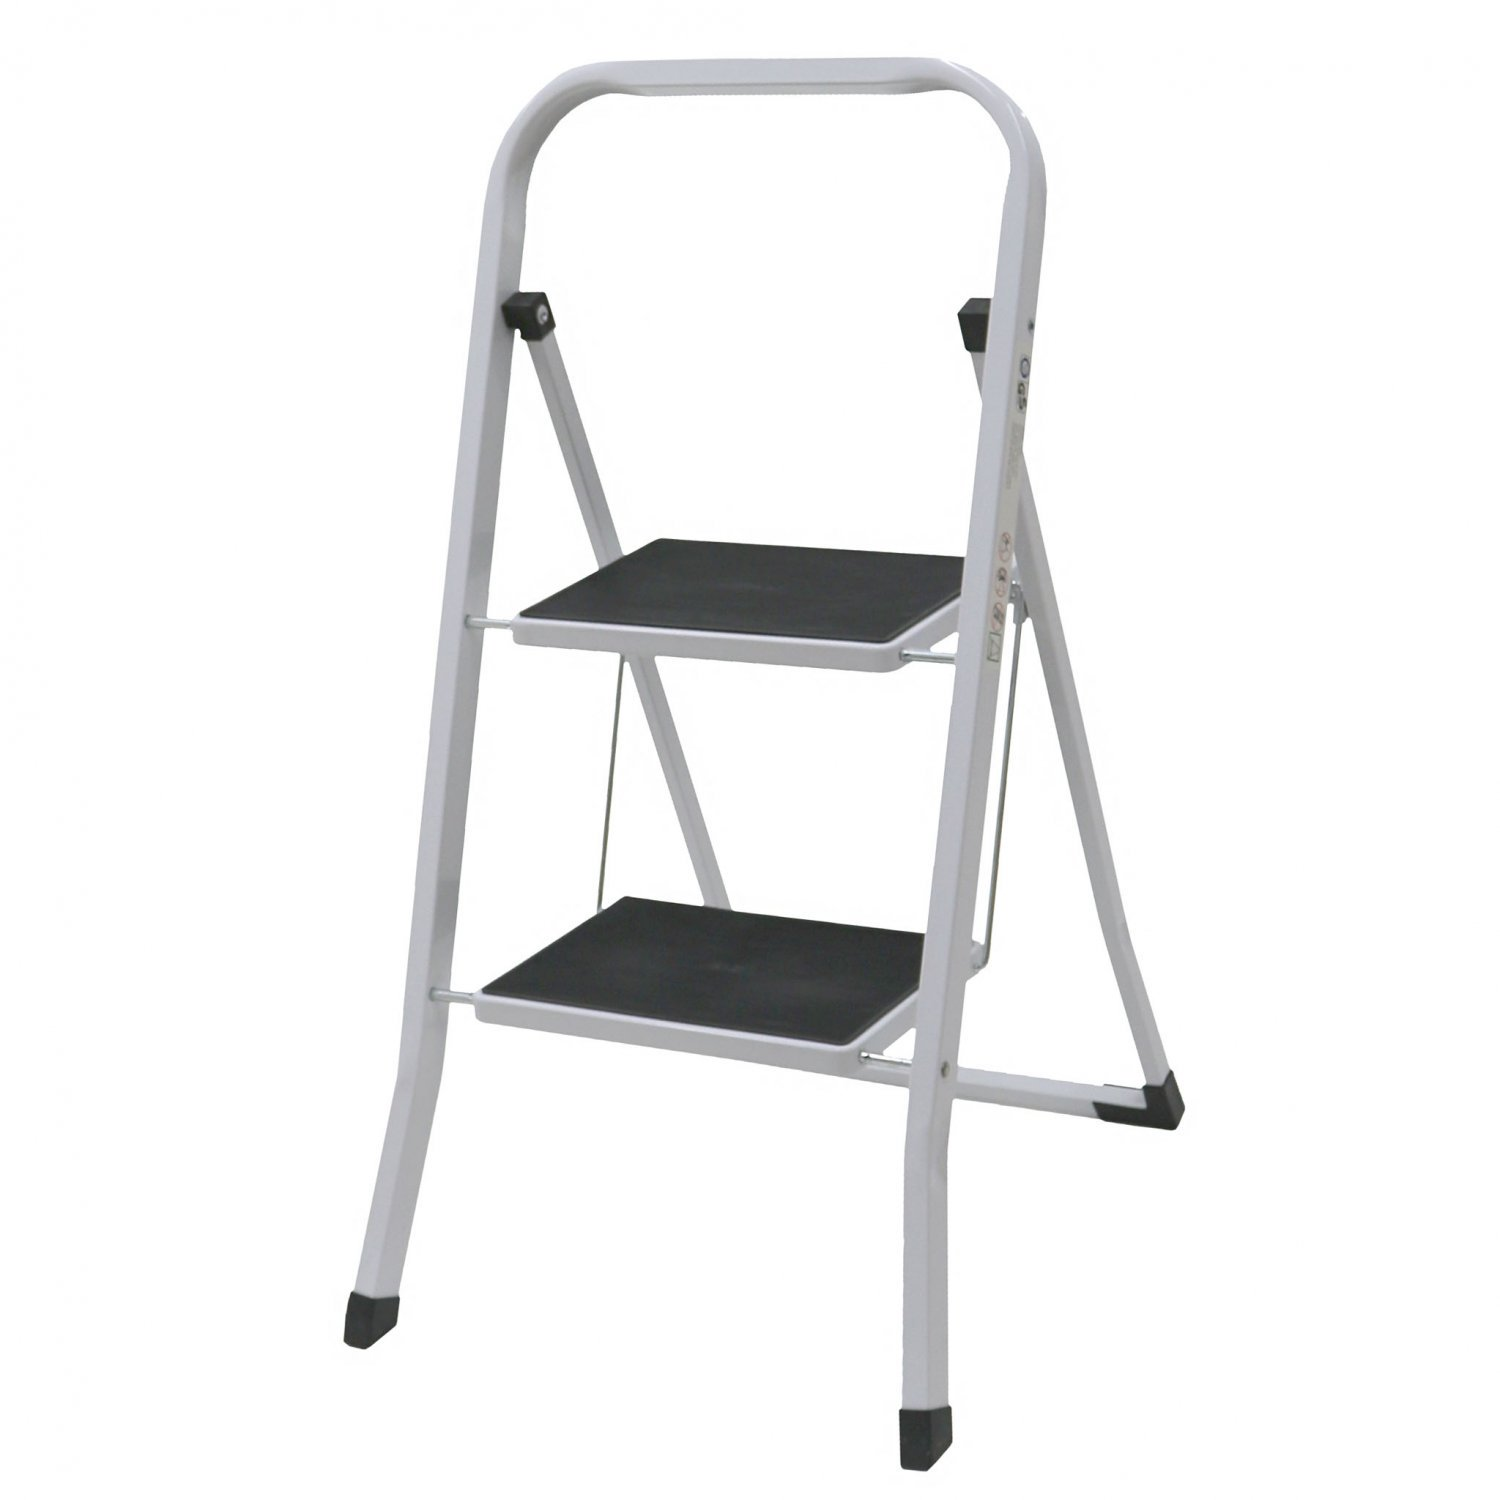 Foldable 2 Step Ladder Stepladder Non Slip Tread Safety Steel